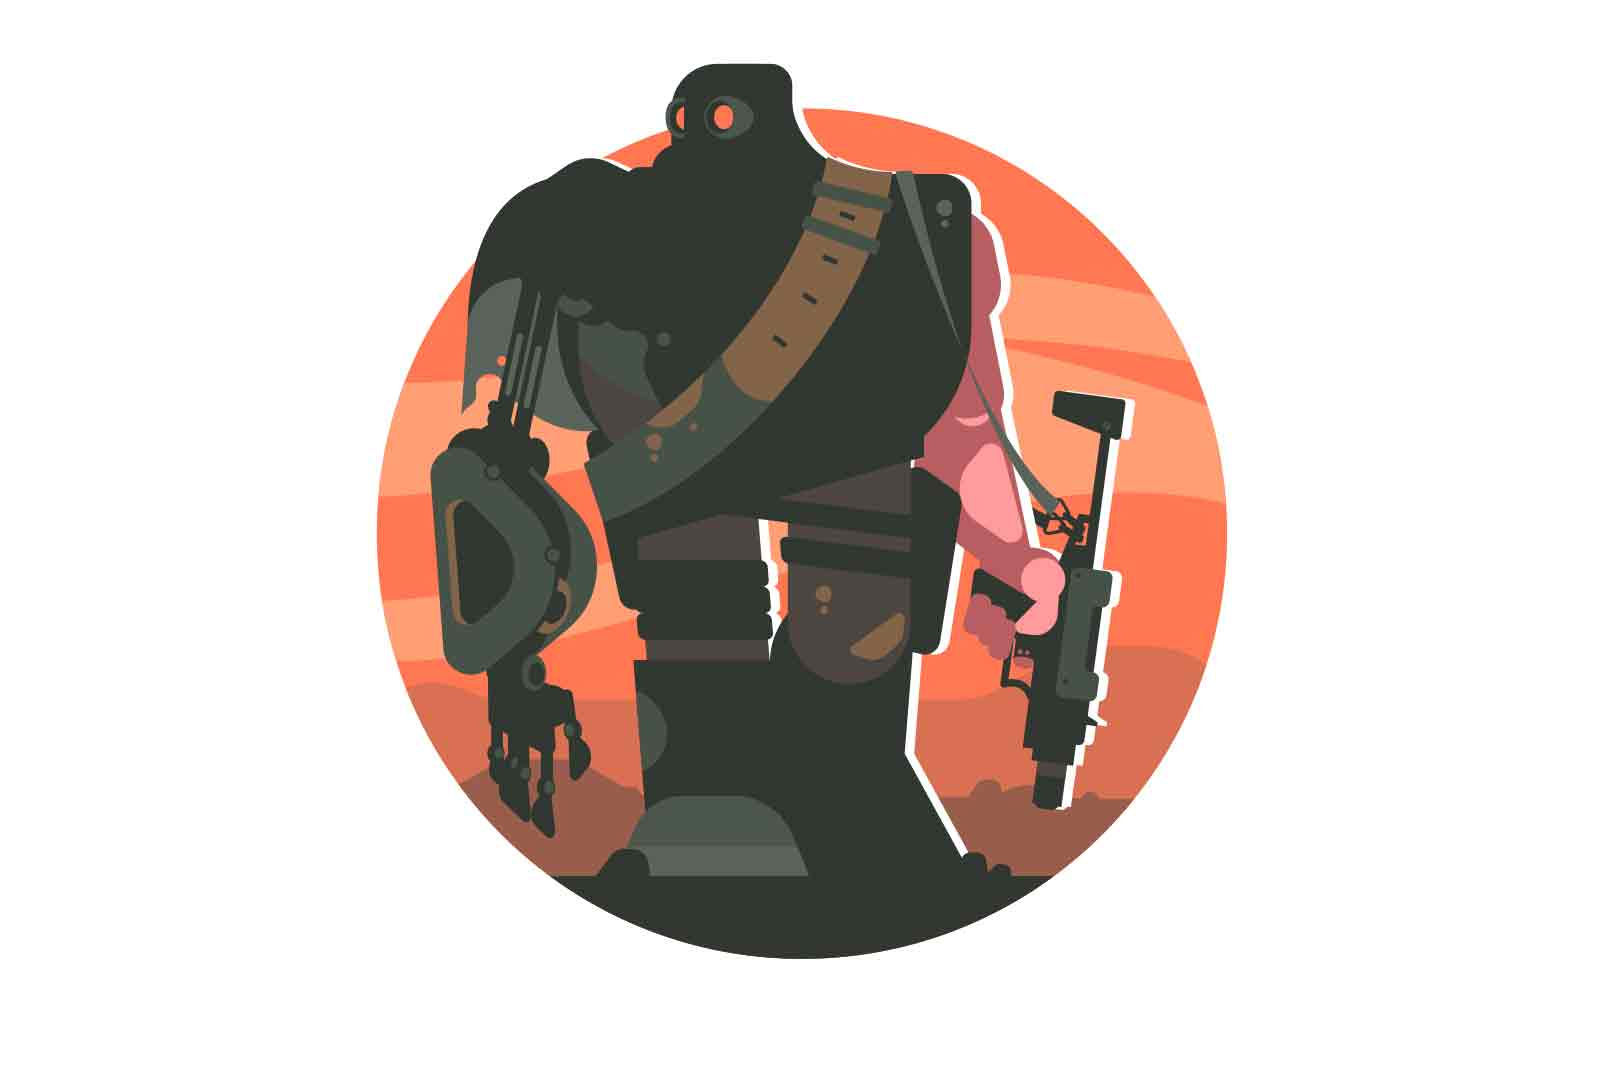 Cartoon cyborg with weapon vector illustration. Robot soldier with gun flat style concept. Artificial intelligence and army latest technology idea